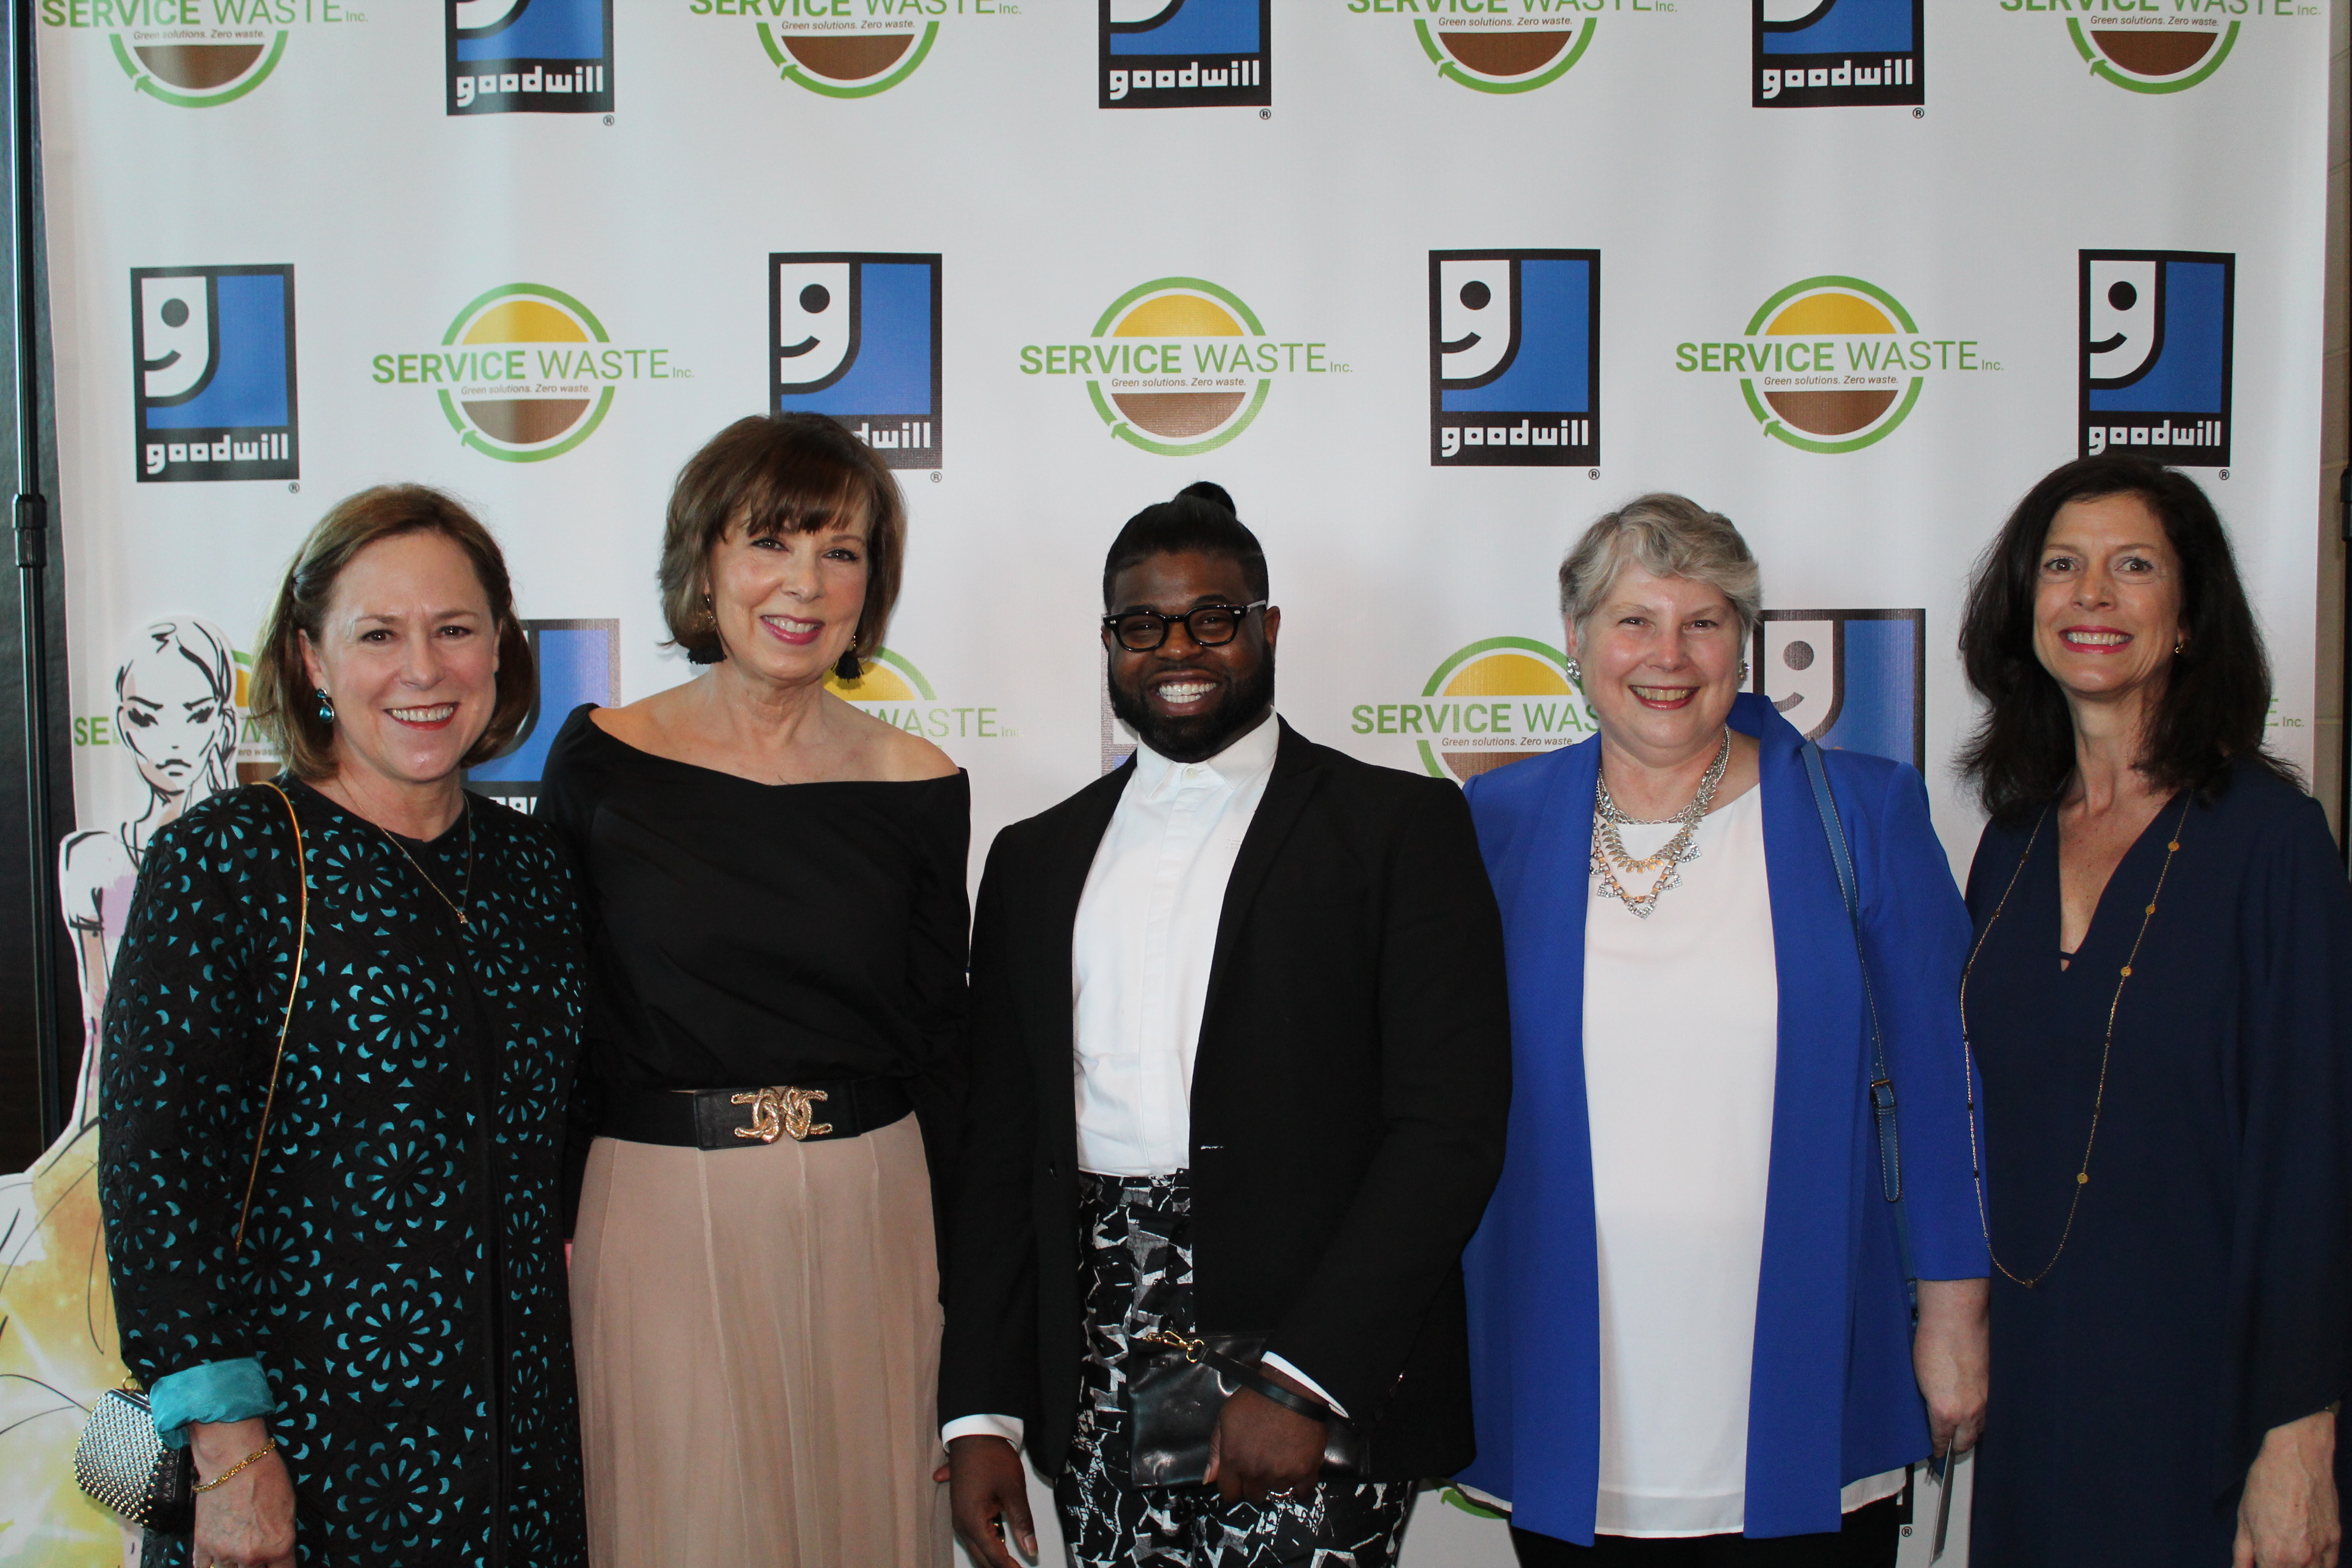 Claire Schmid, Holley Williams, Anthony L. Williams, Susan Leach and Sheila Owen